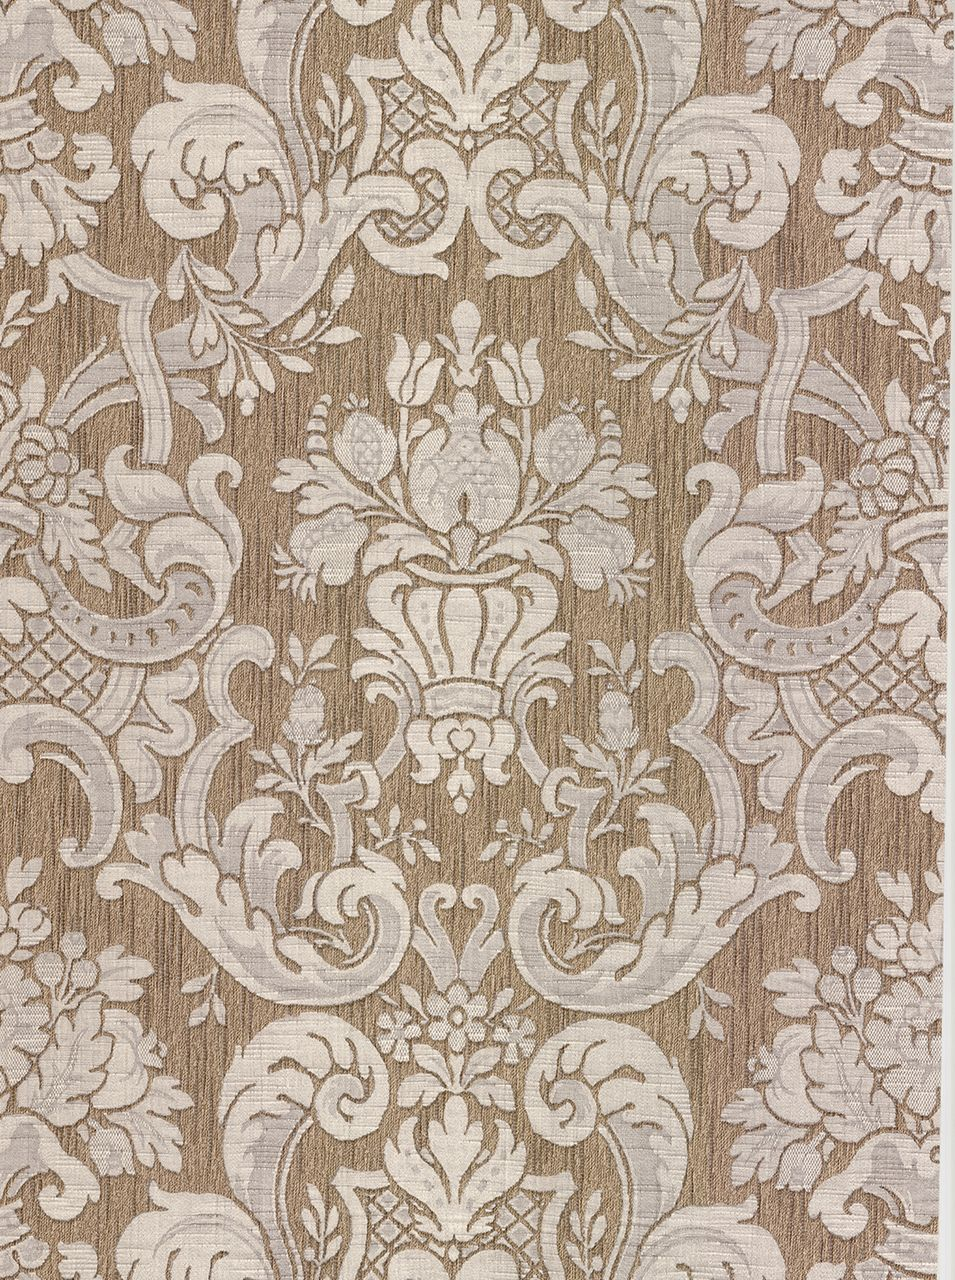 Bellissimo Vi By Brewster 2768 95552 Milano Taupe Damask Wallpaper Damask Wallpaper Brewster Wallpaper Grey Damask Wallpaper